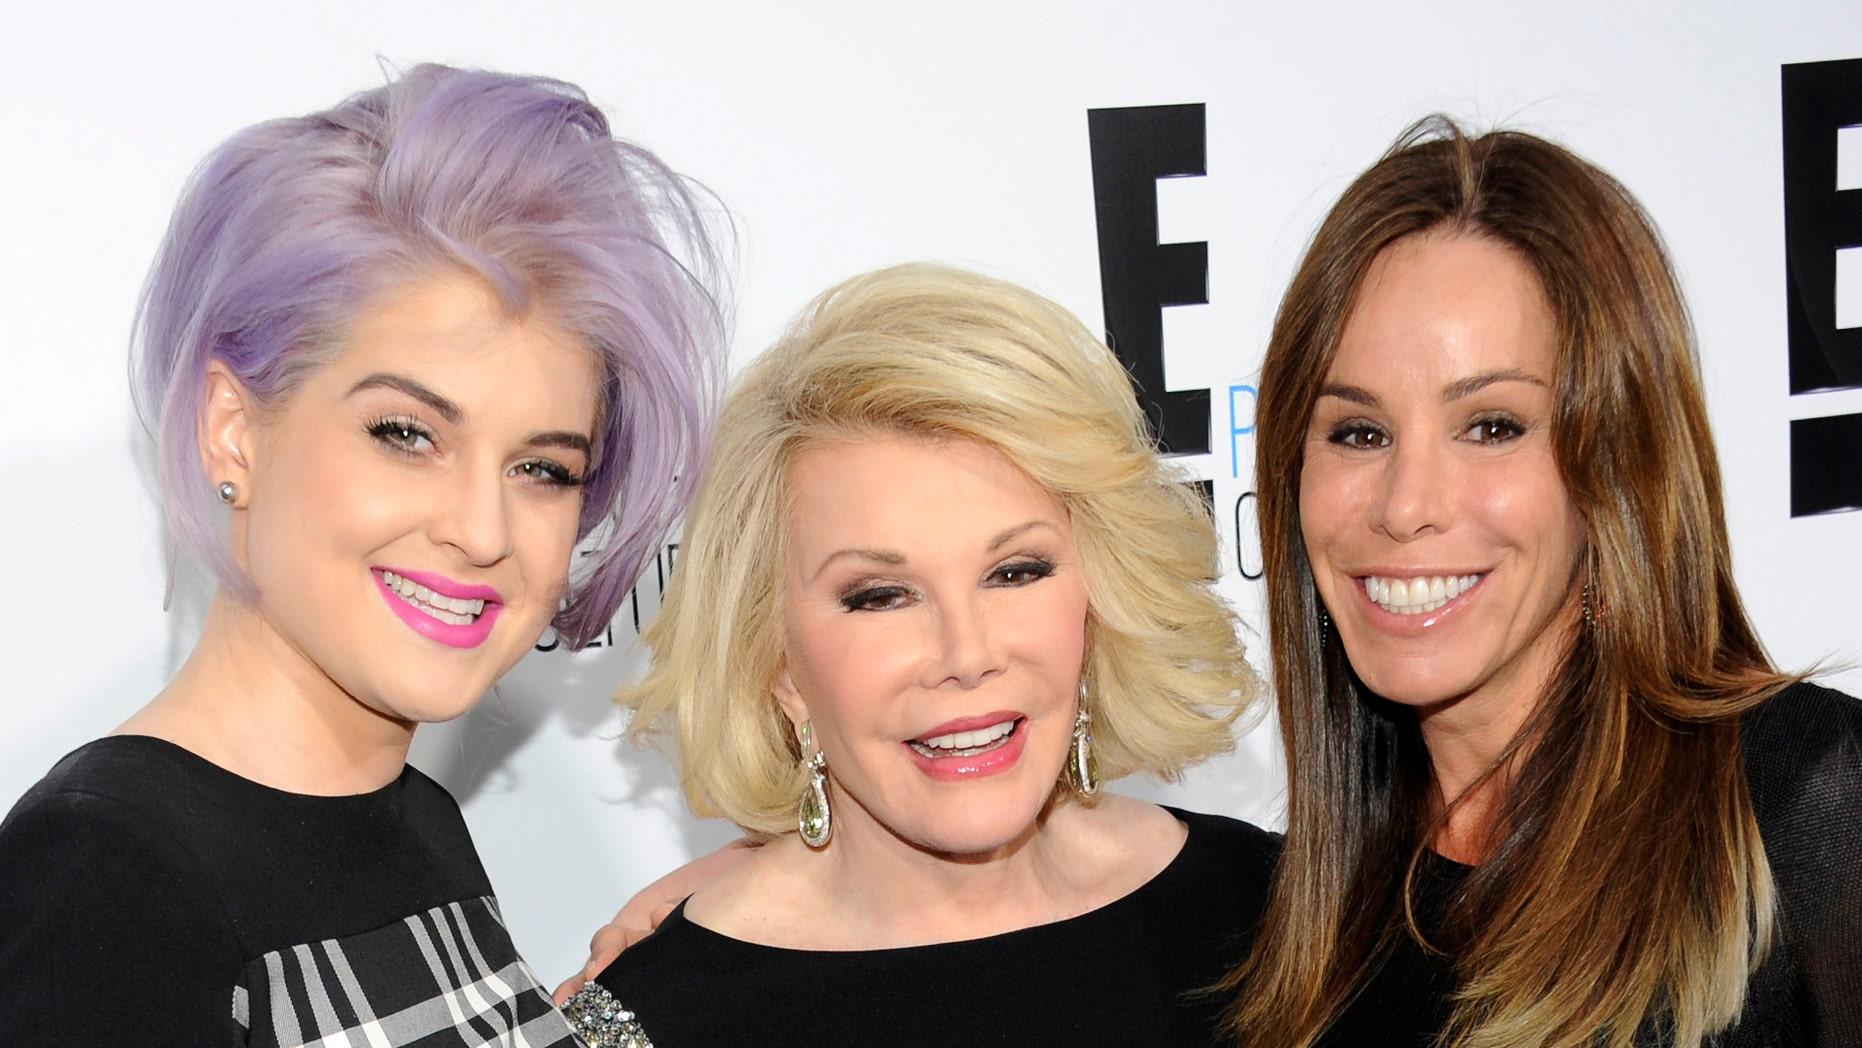 """April 30, 2012. Kelly Osbourne, left, and Joan Rivers, center, co-hosts of the show """"Fashion Police"""" and show producer Melissa Rivers pose at an E! Network upfront event in New York."""